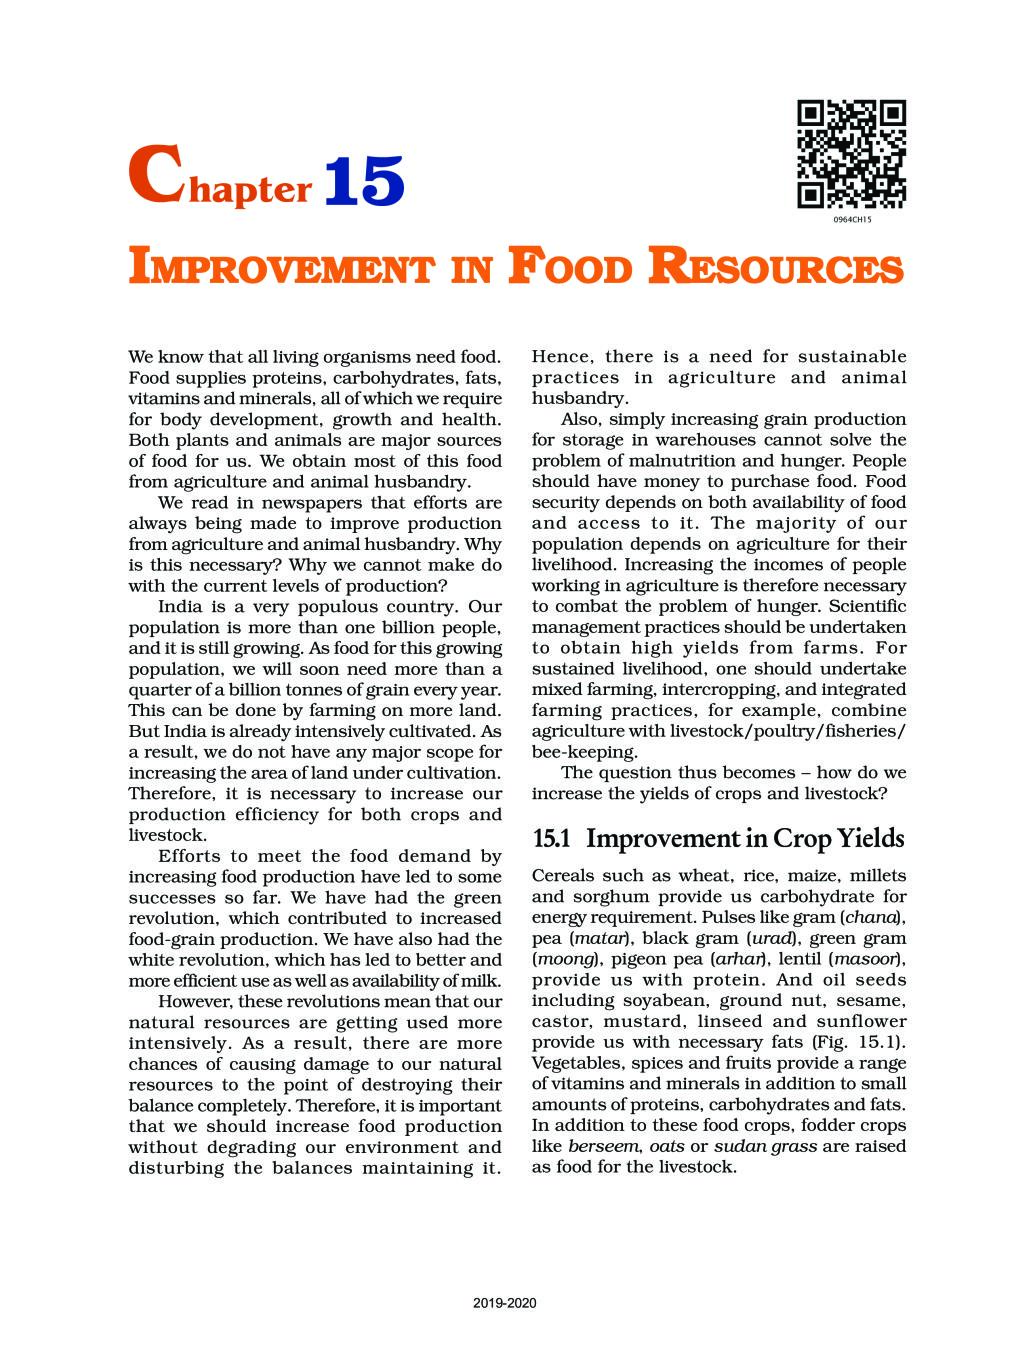 NCERT Book Class 9 Science Chapter 15 Improvement In Food Resources